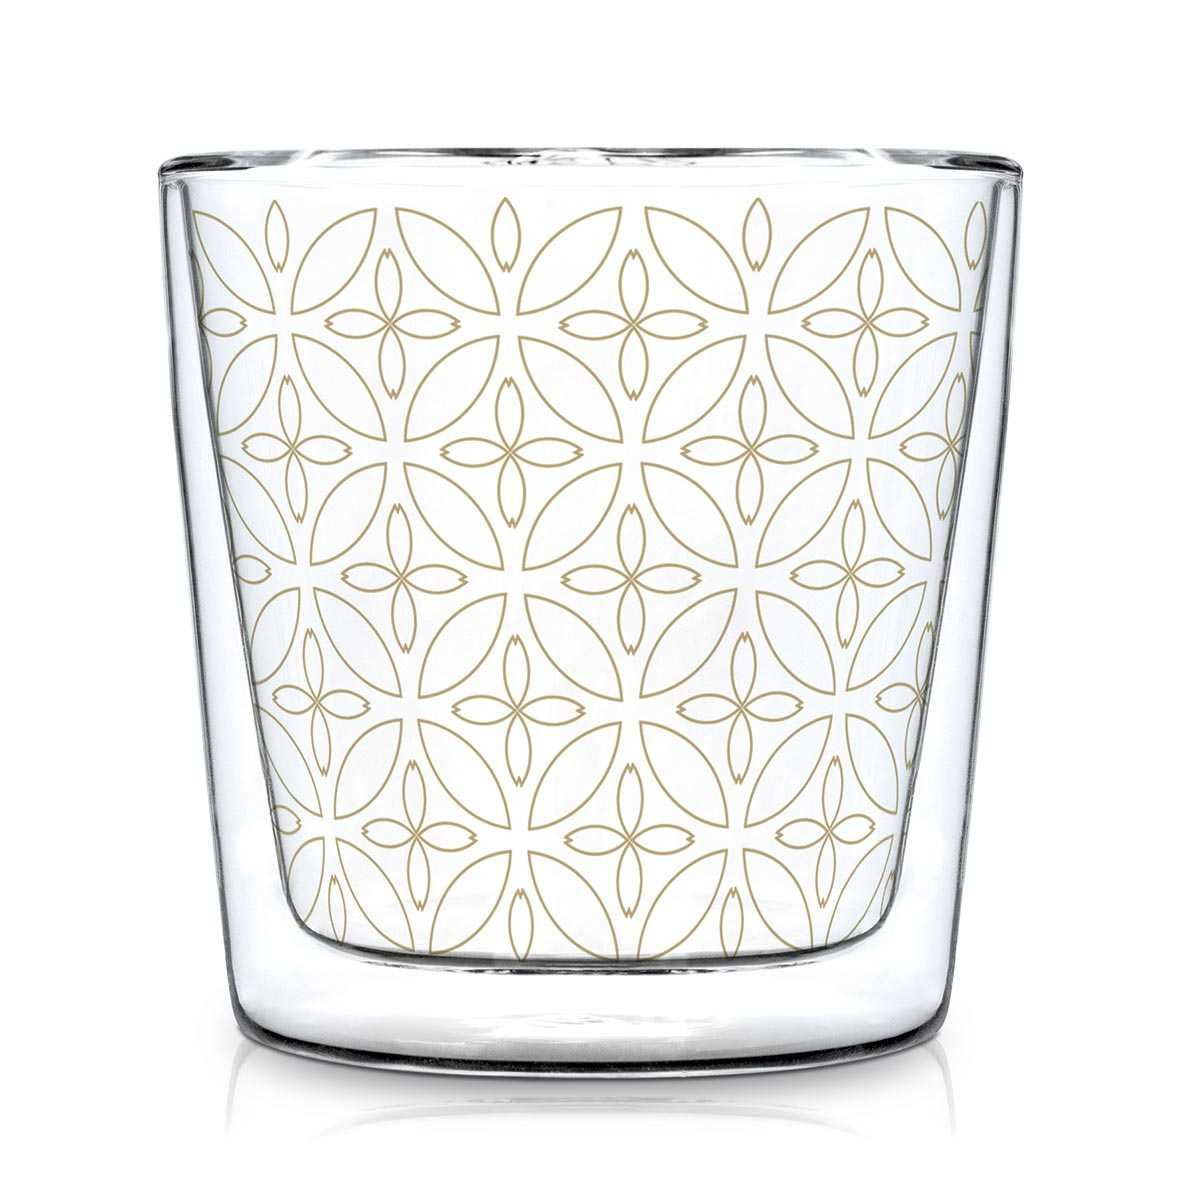 Double wall glass - Kyoto real gold